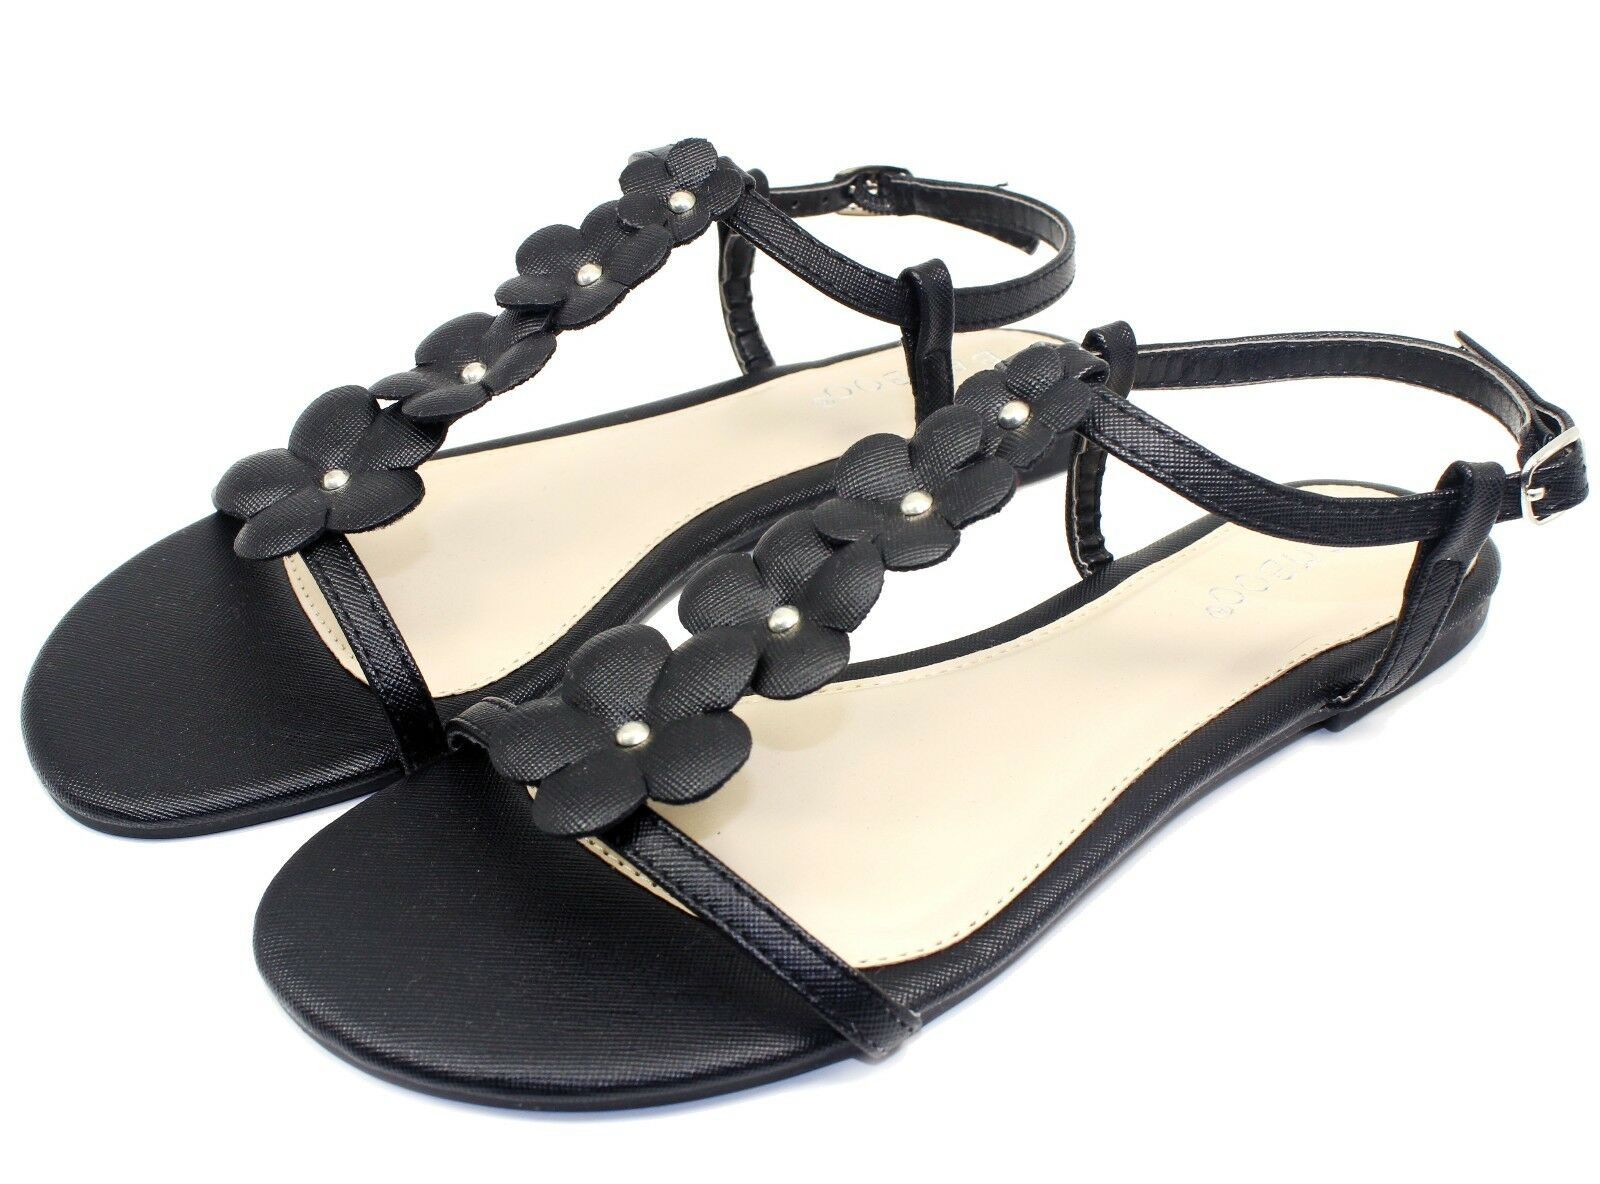 Man/Woman CALEB-10 New Flats Sandals Buckle Shoes Gladiator Party Beach Women Shoes Buckle Black 6.5 Special purchase First grade in its class Explosive good goods VG642 ff9196